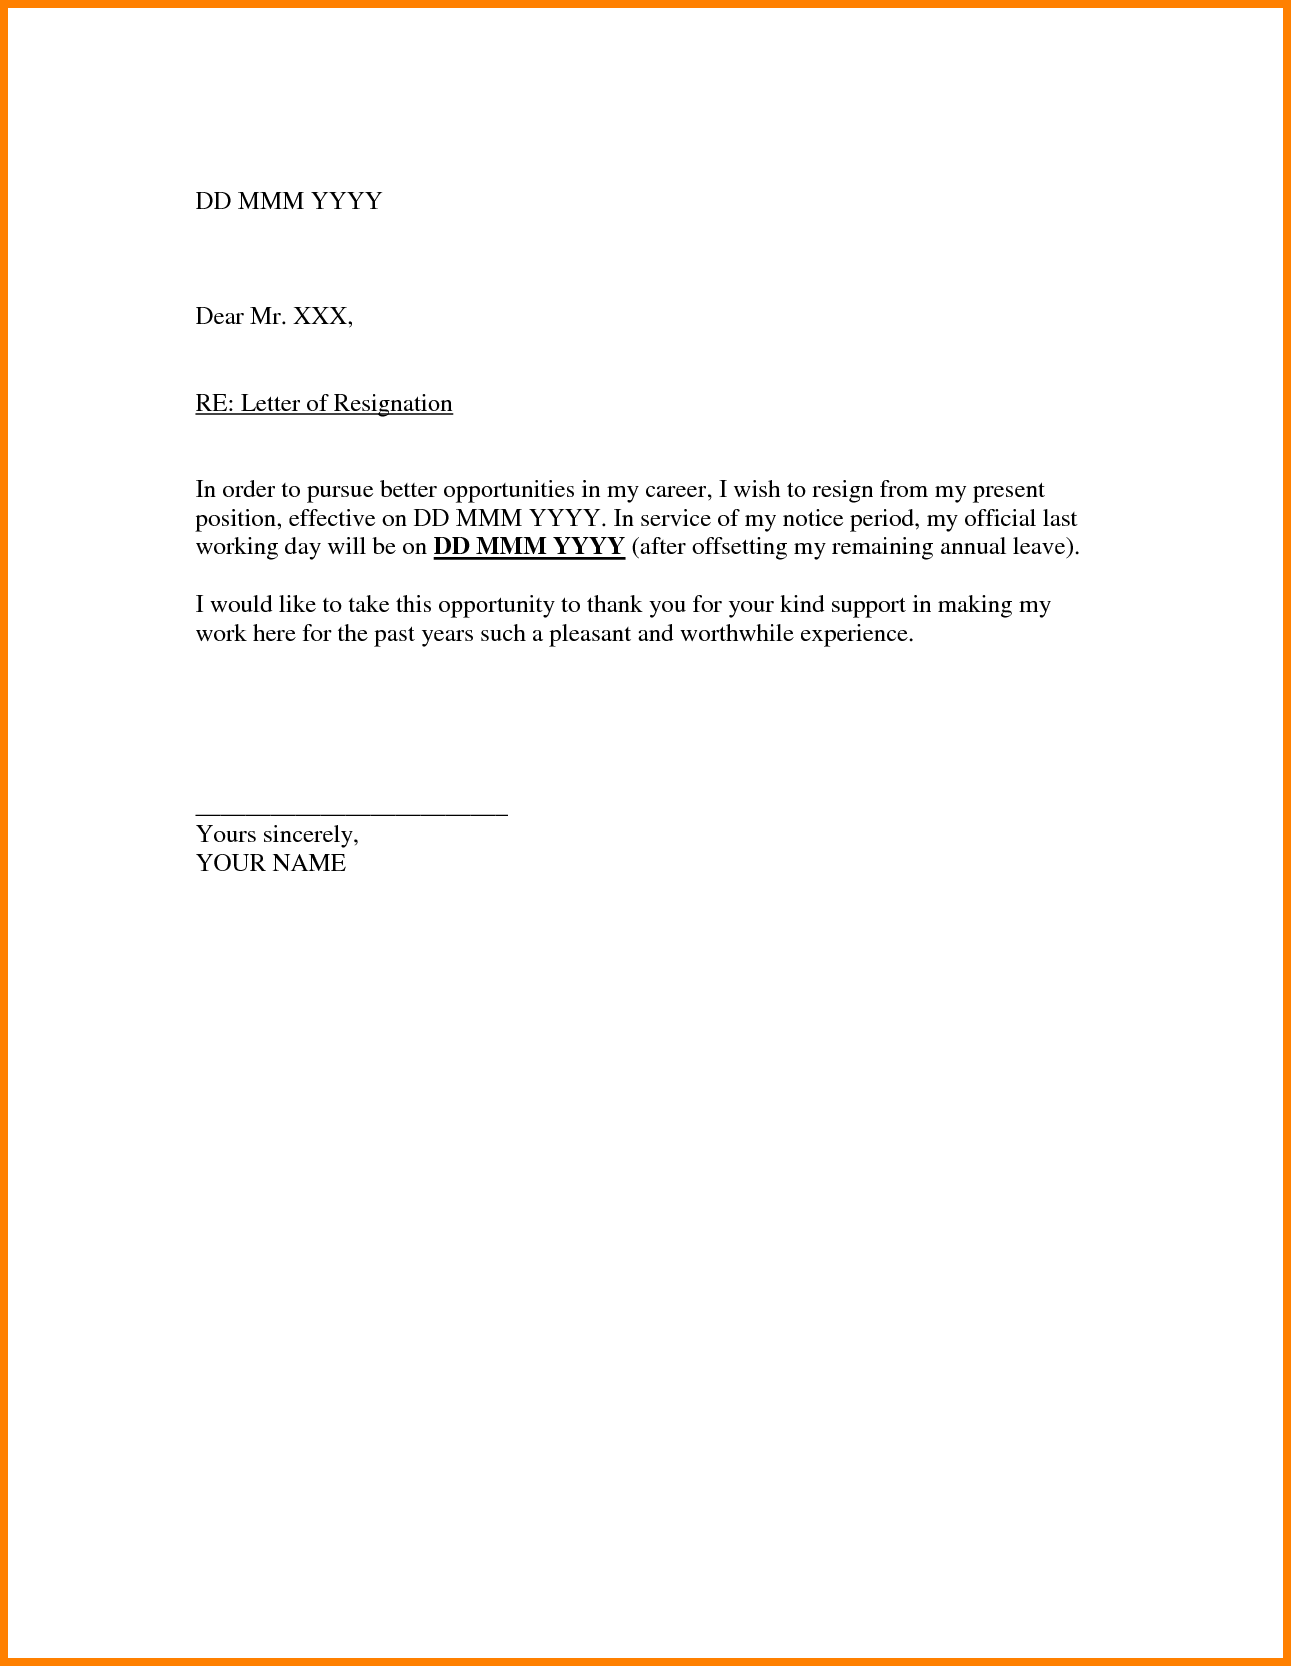 Resigning letter example thecheapjerseys Images